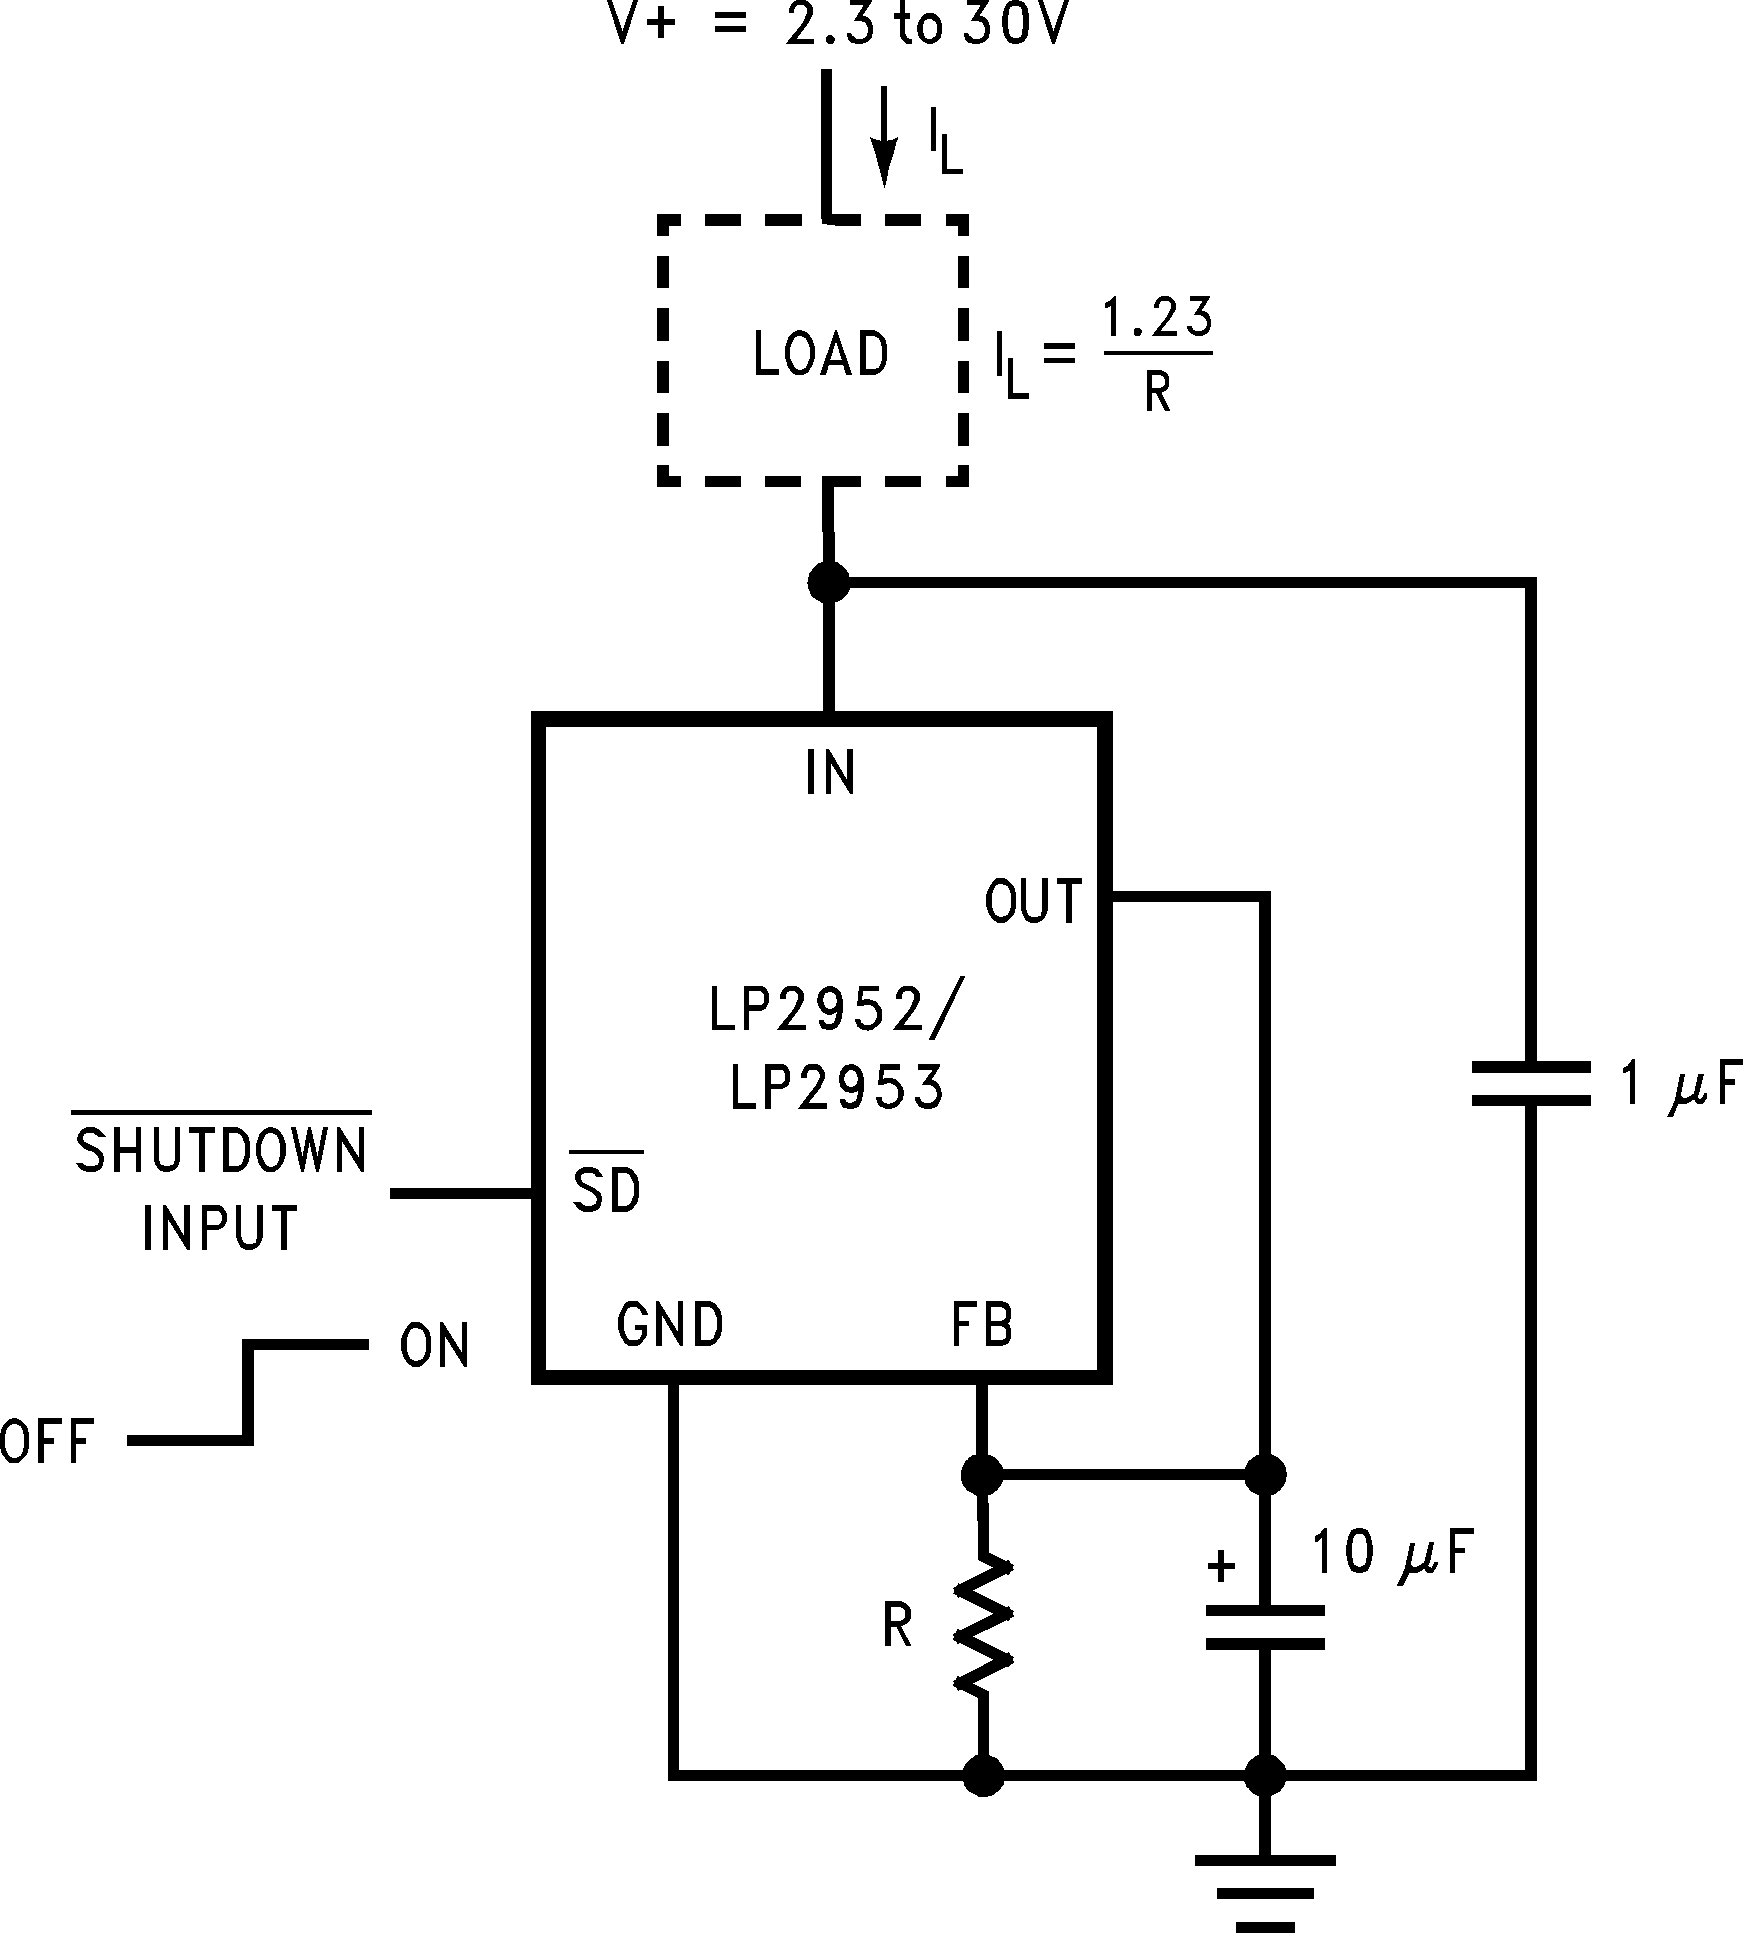 Lp2953 Voltagecontrolledcurrentsink Addaconvertercircuit Circuit Lp2952 N Lp2952a Lp2953a 01112717 Figure 37 Low Temperature Coefficient Current Sink